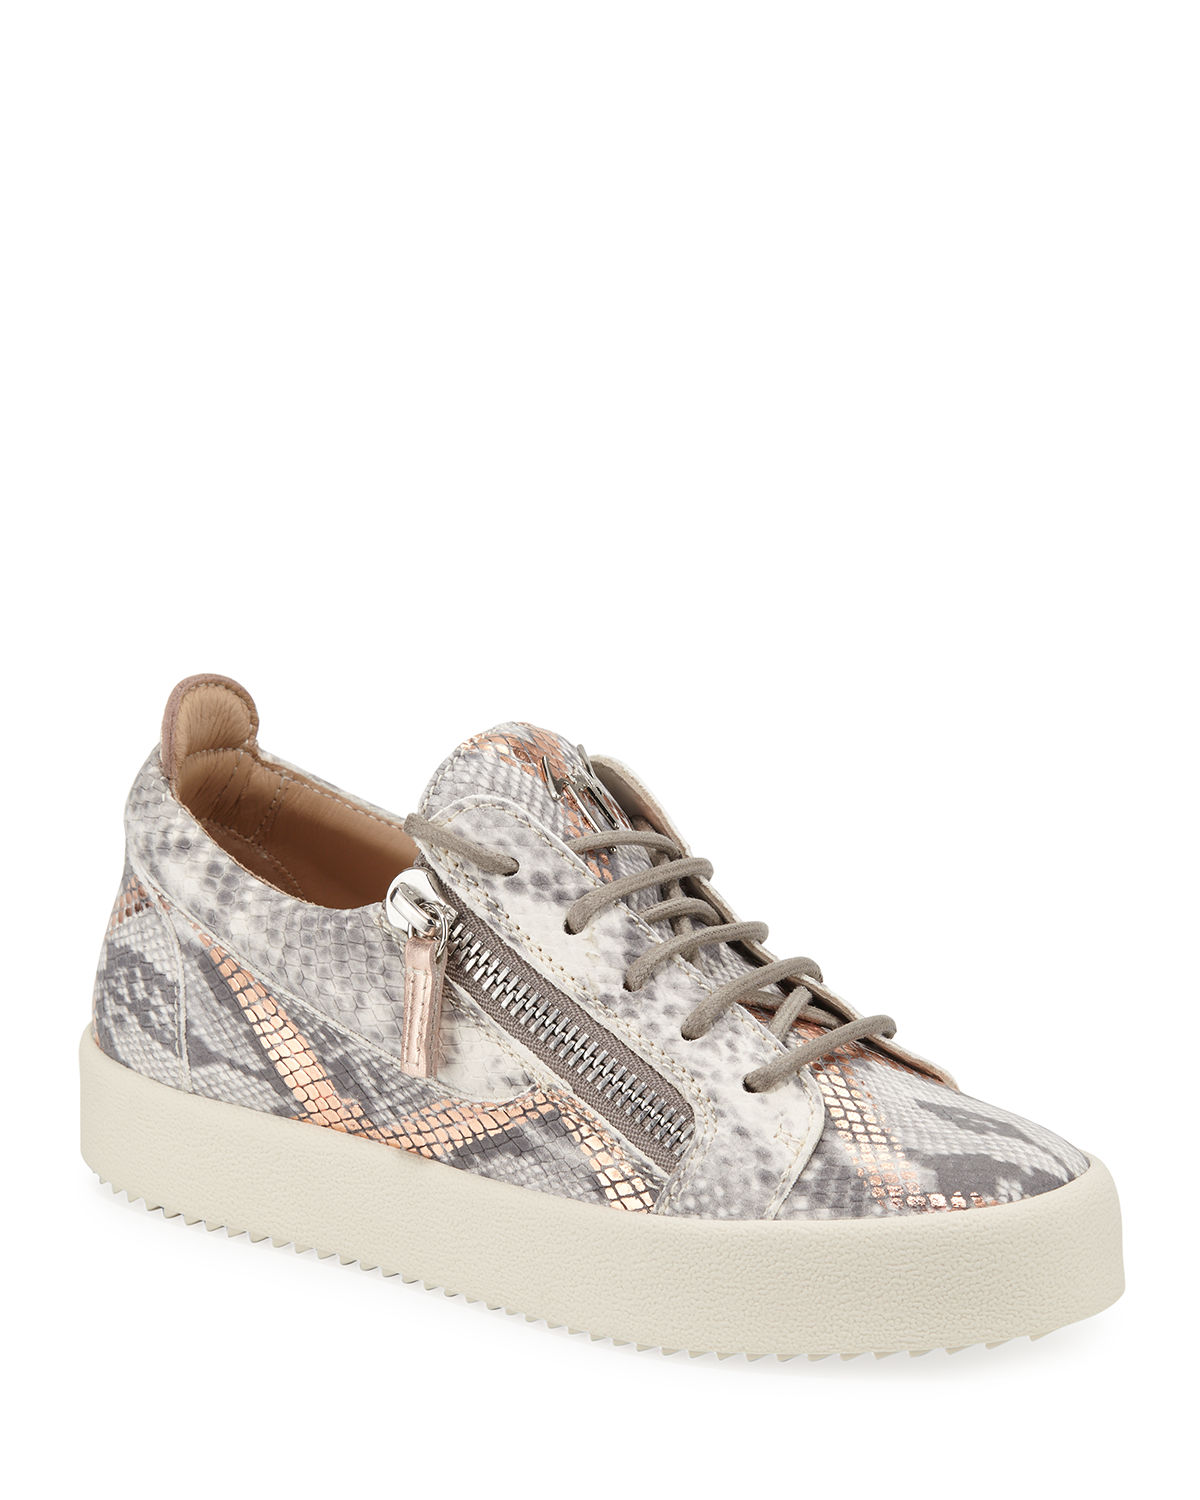 5186bb298b7e Giuseppe Zanotti Embossed Leather Low-Top Sneakers